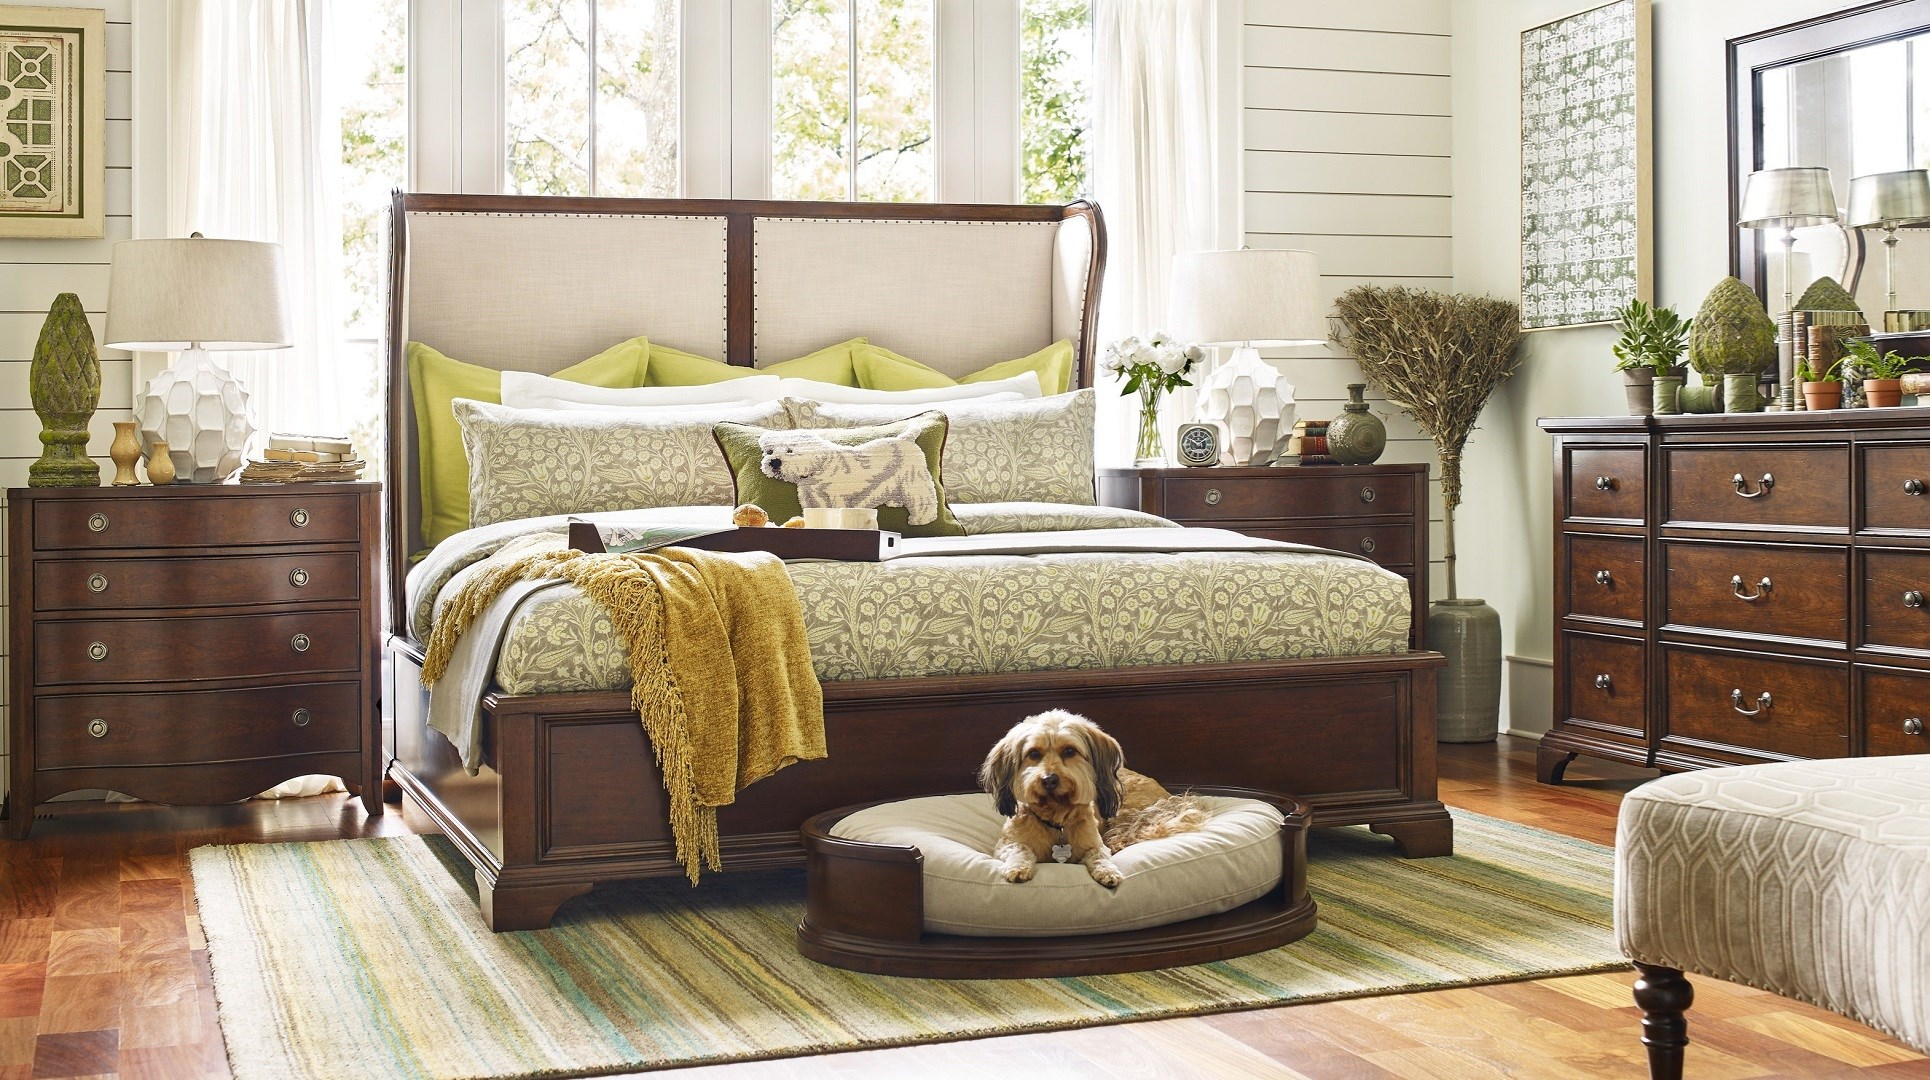 J&j Furniture | Jcpenney Furniture | Aarons Furniture Store